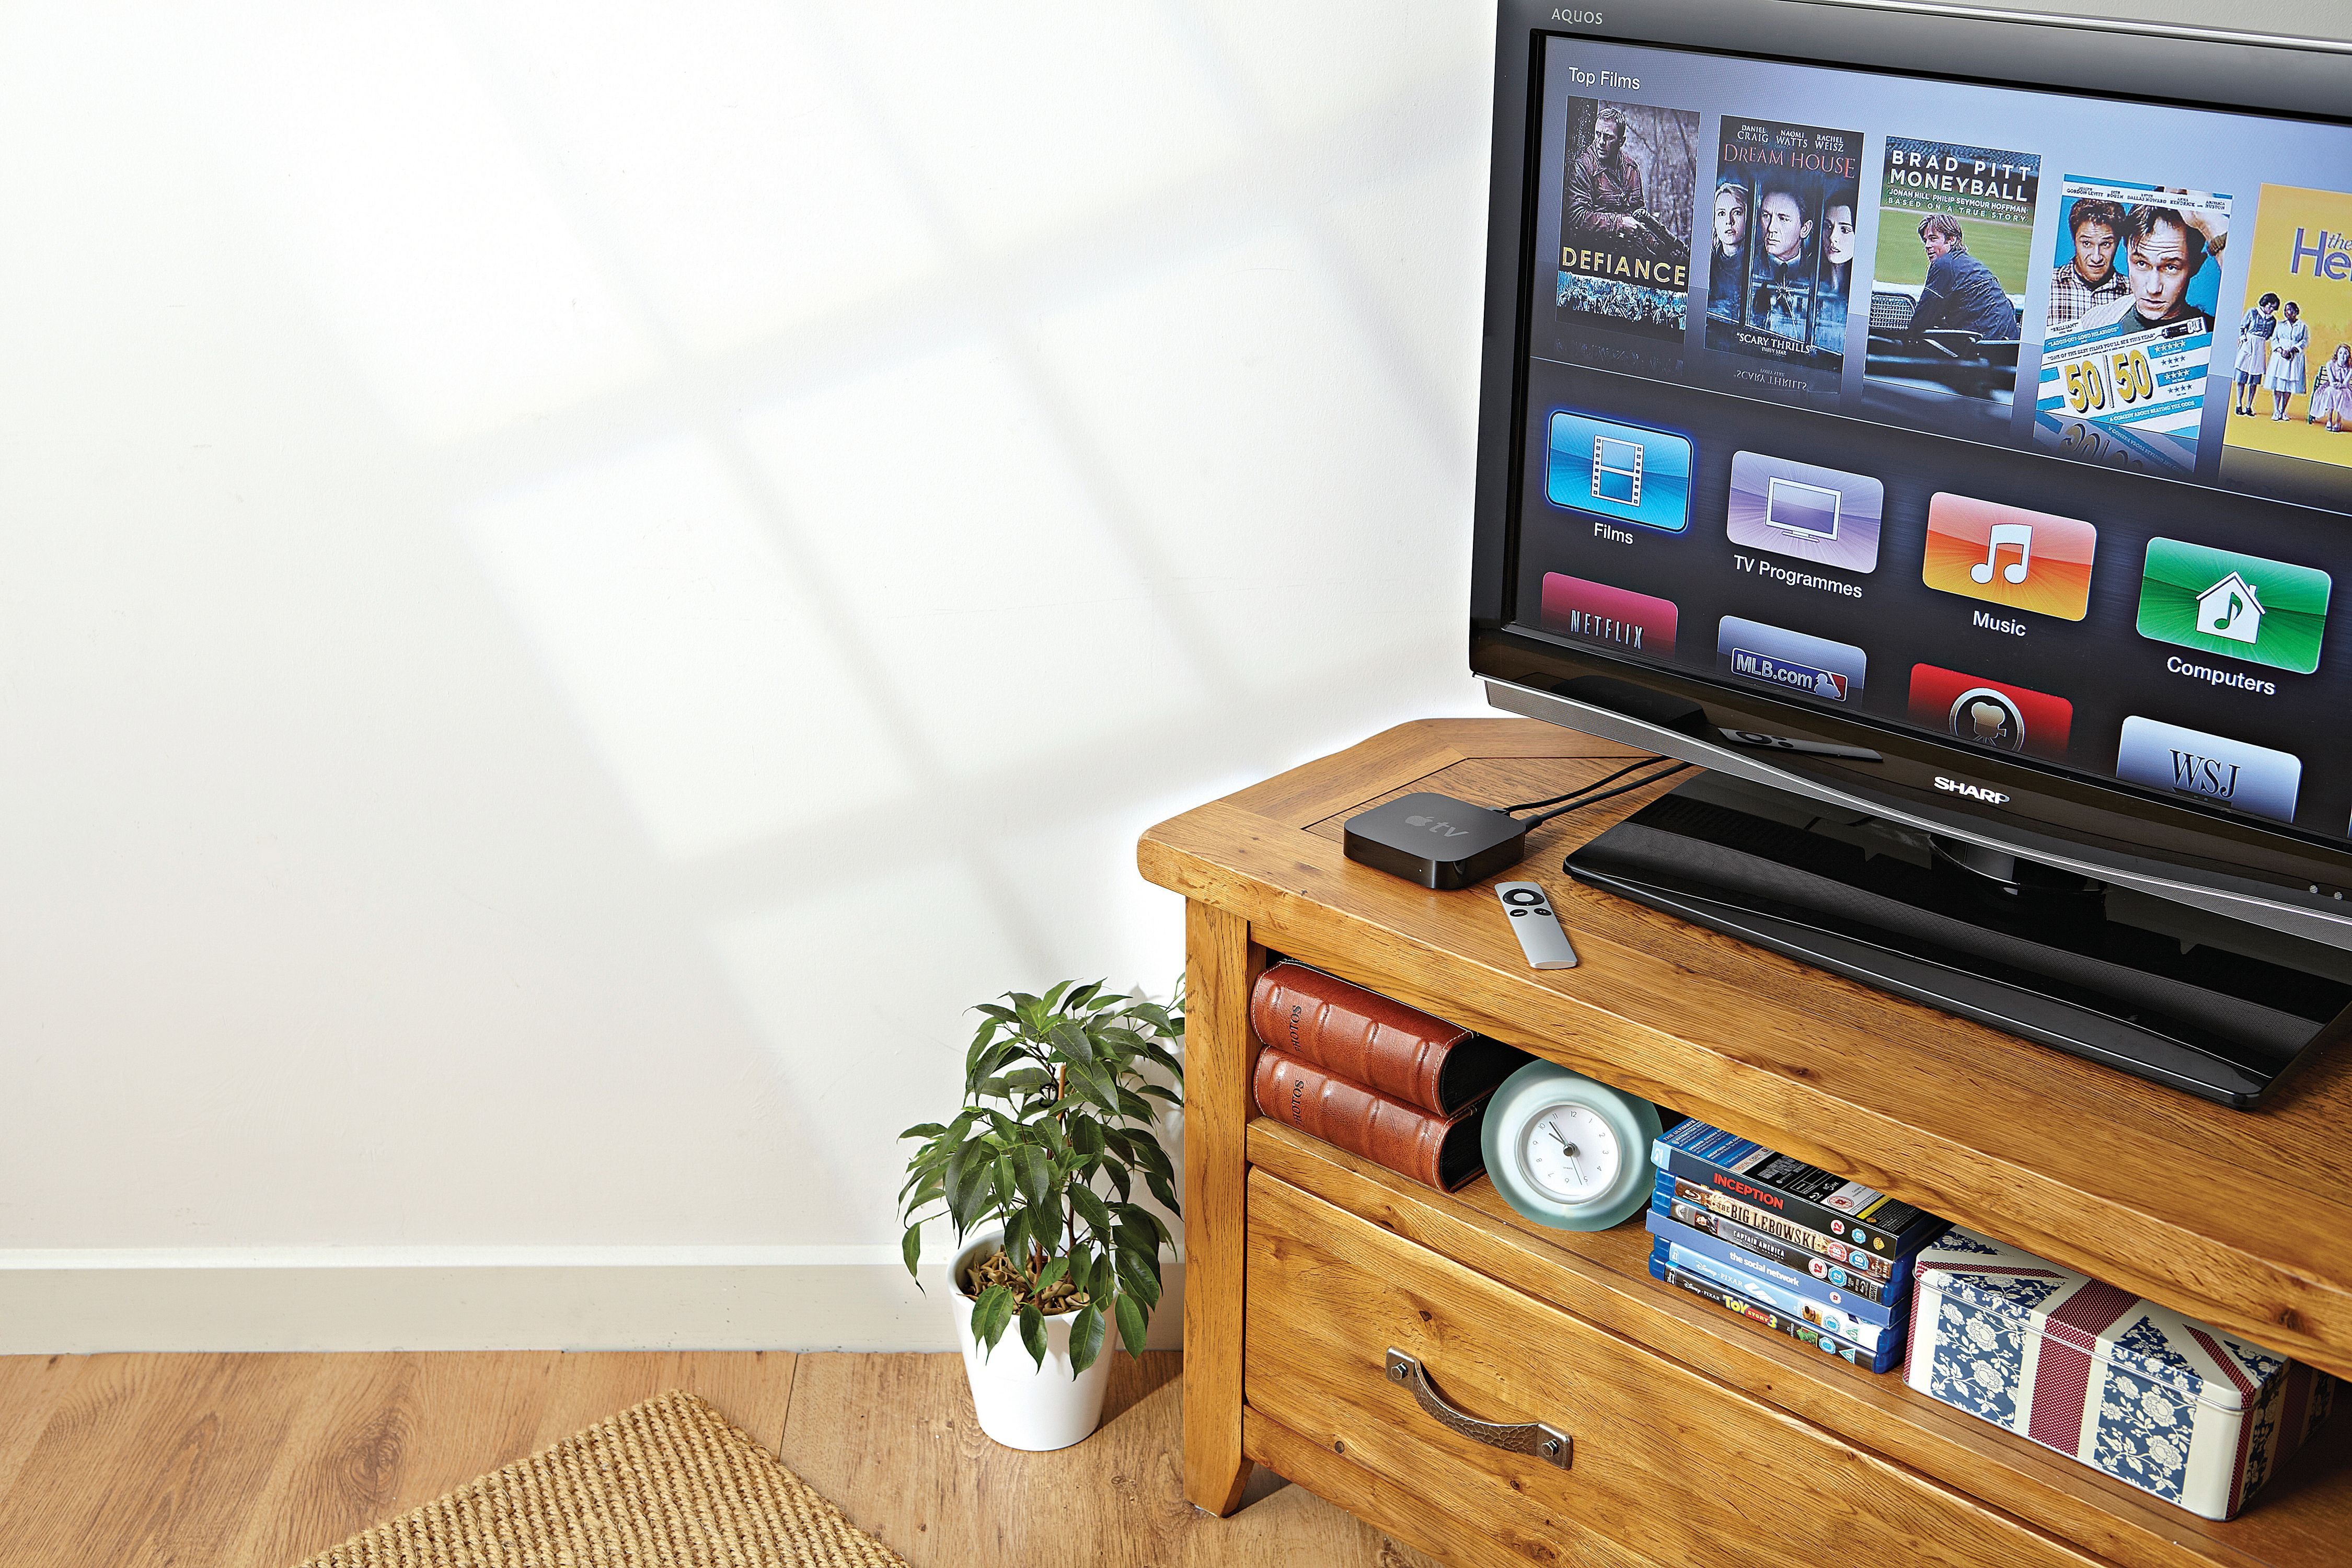 For The First Time More Americans Pay For Internet Video Than Cable Or Satellite Tvhttp Fortune Com 2019 03 19 Cord Cu Tv Providers American Pay Satellite Tv